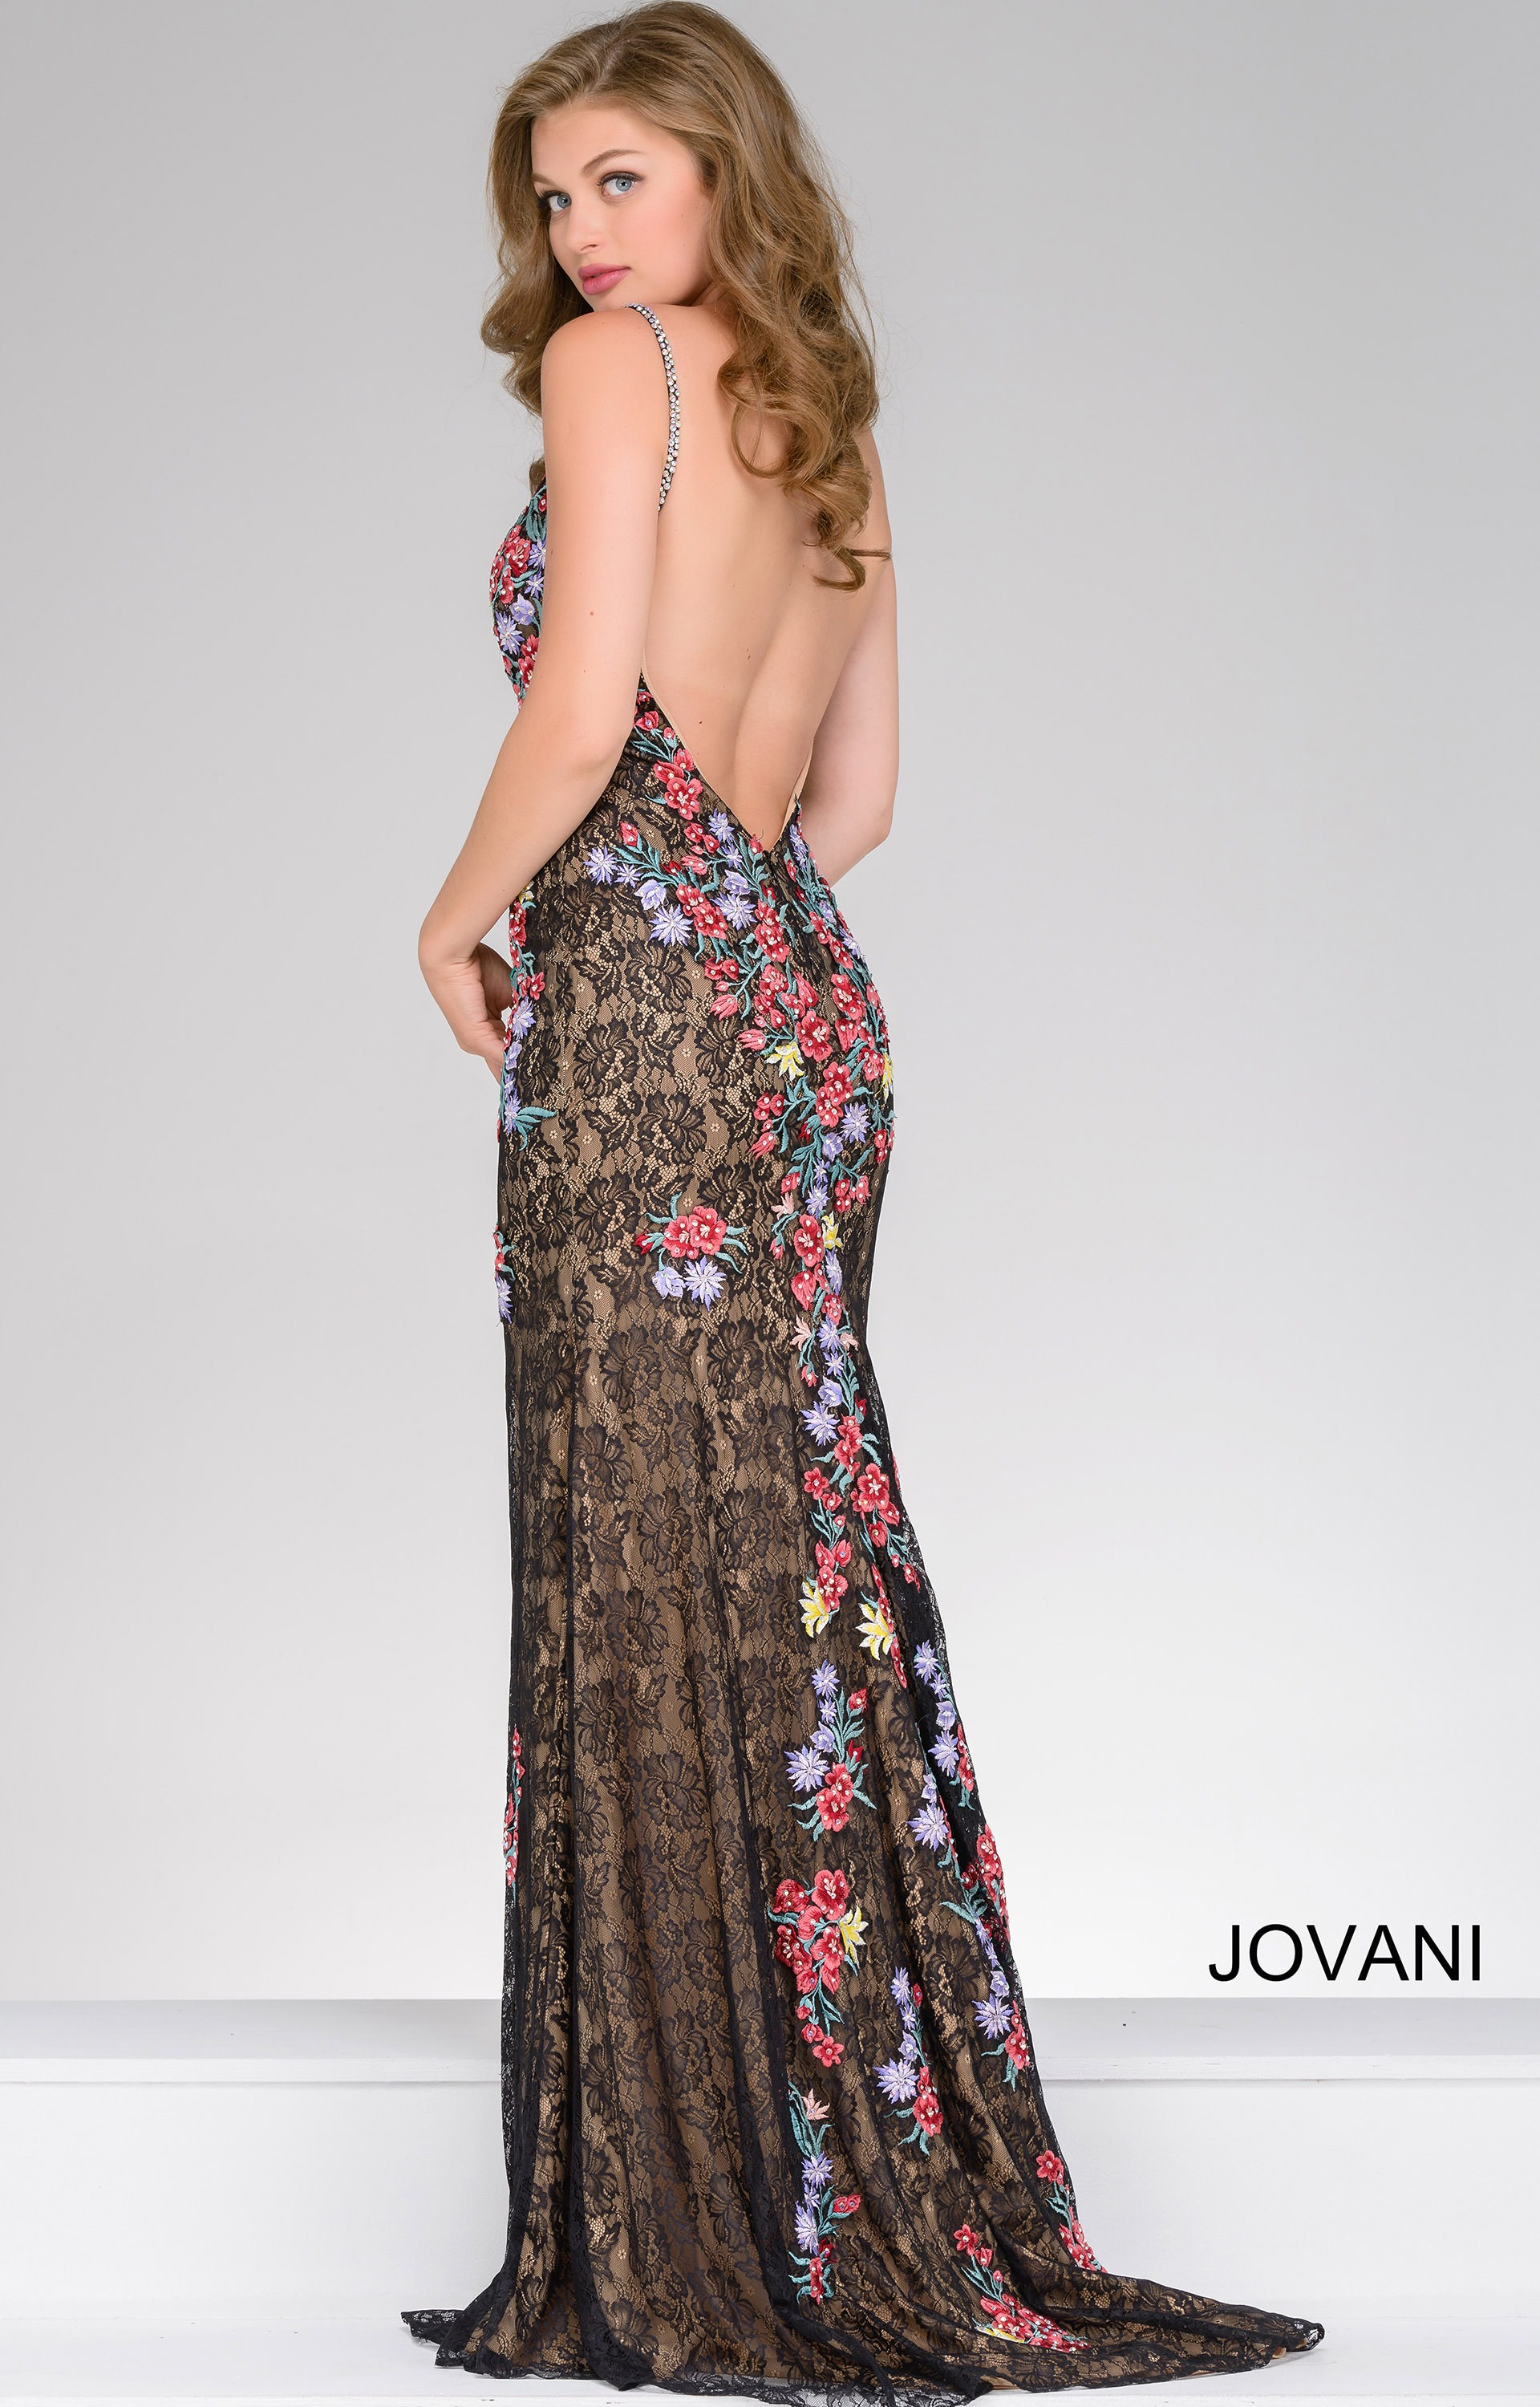 Jovani embroidered floral and lace dress prom